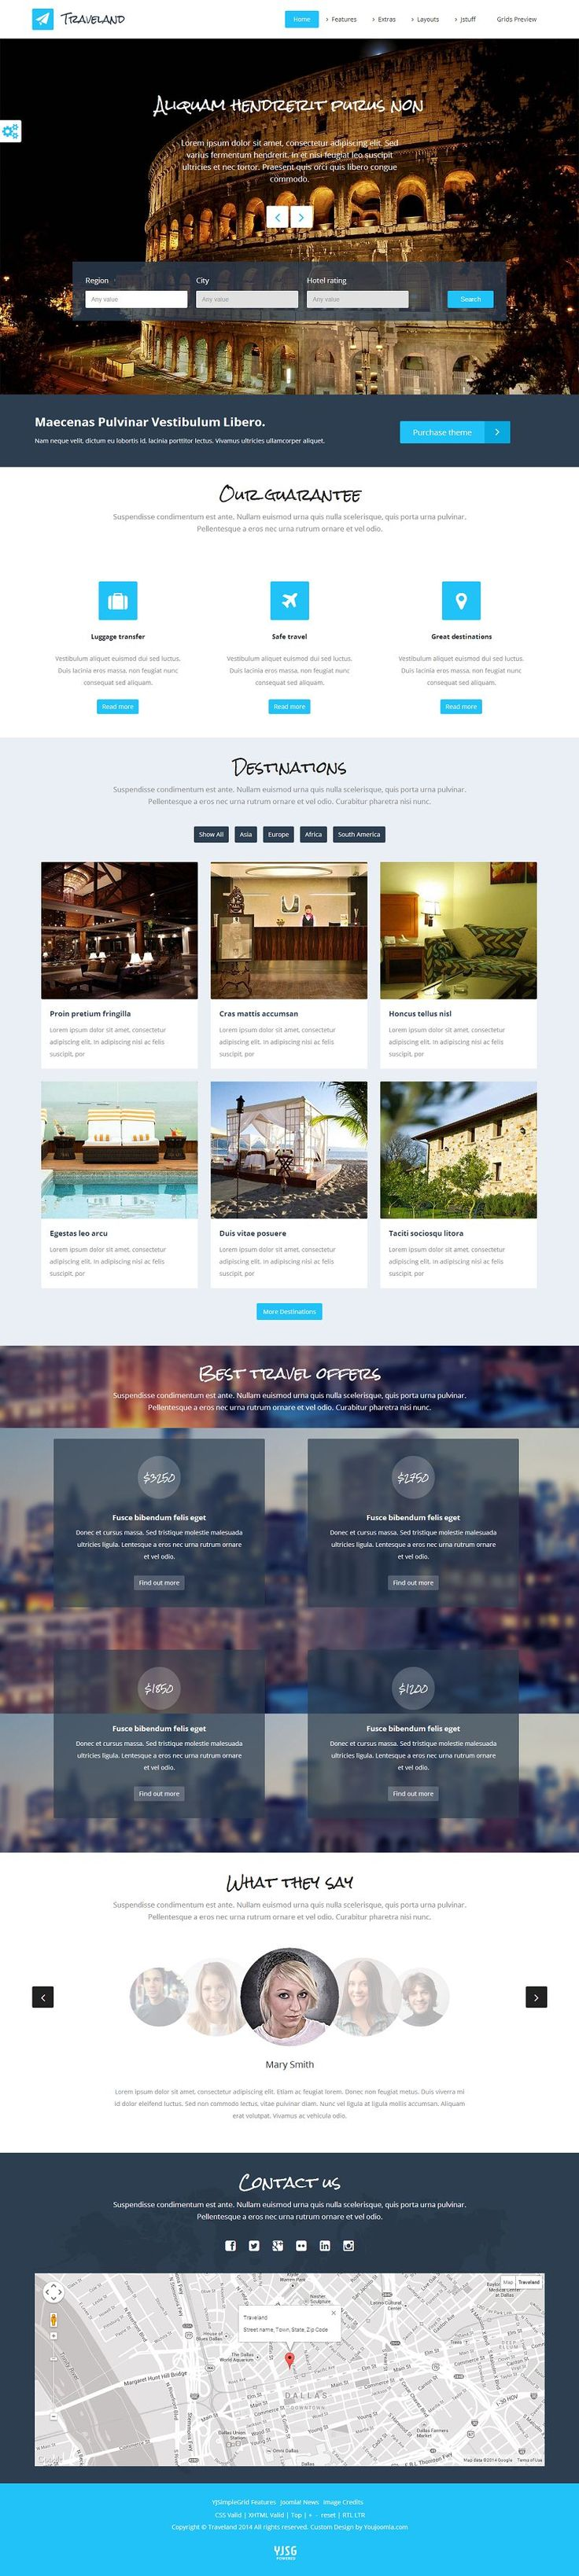 Traveland is an unique flexible flat and